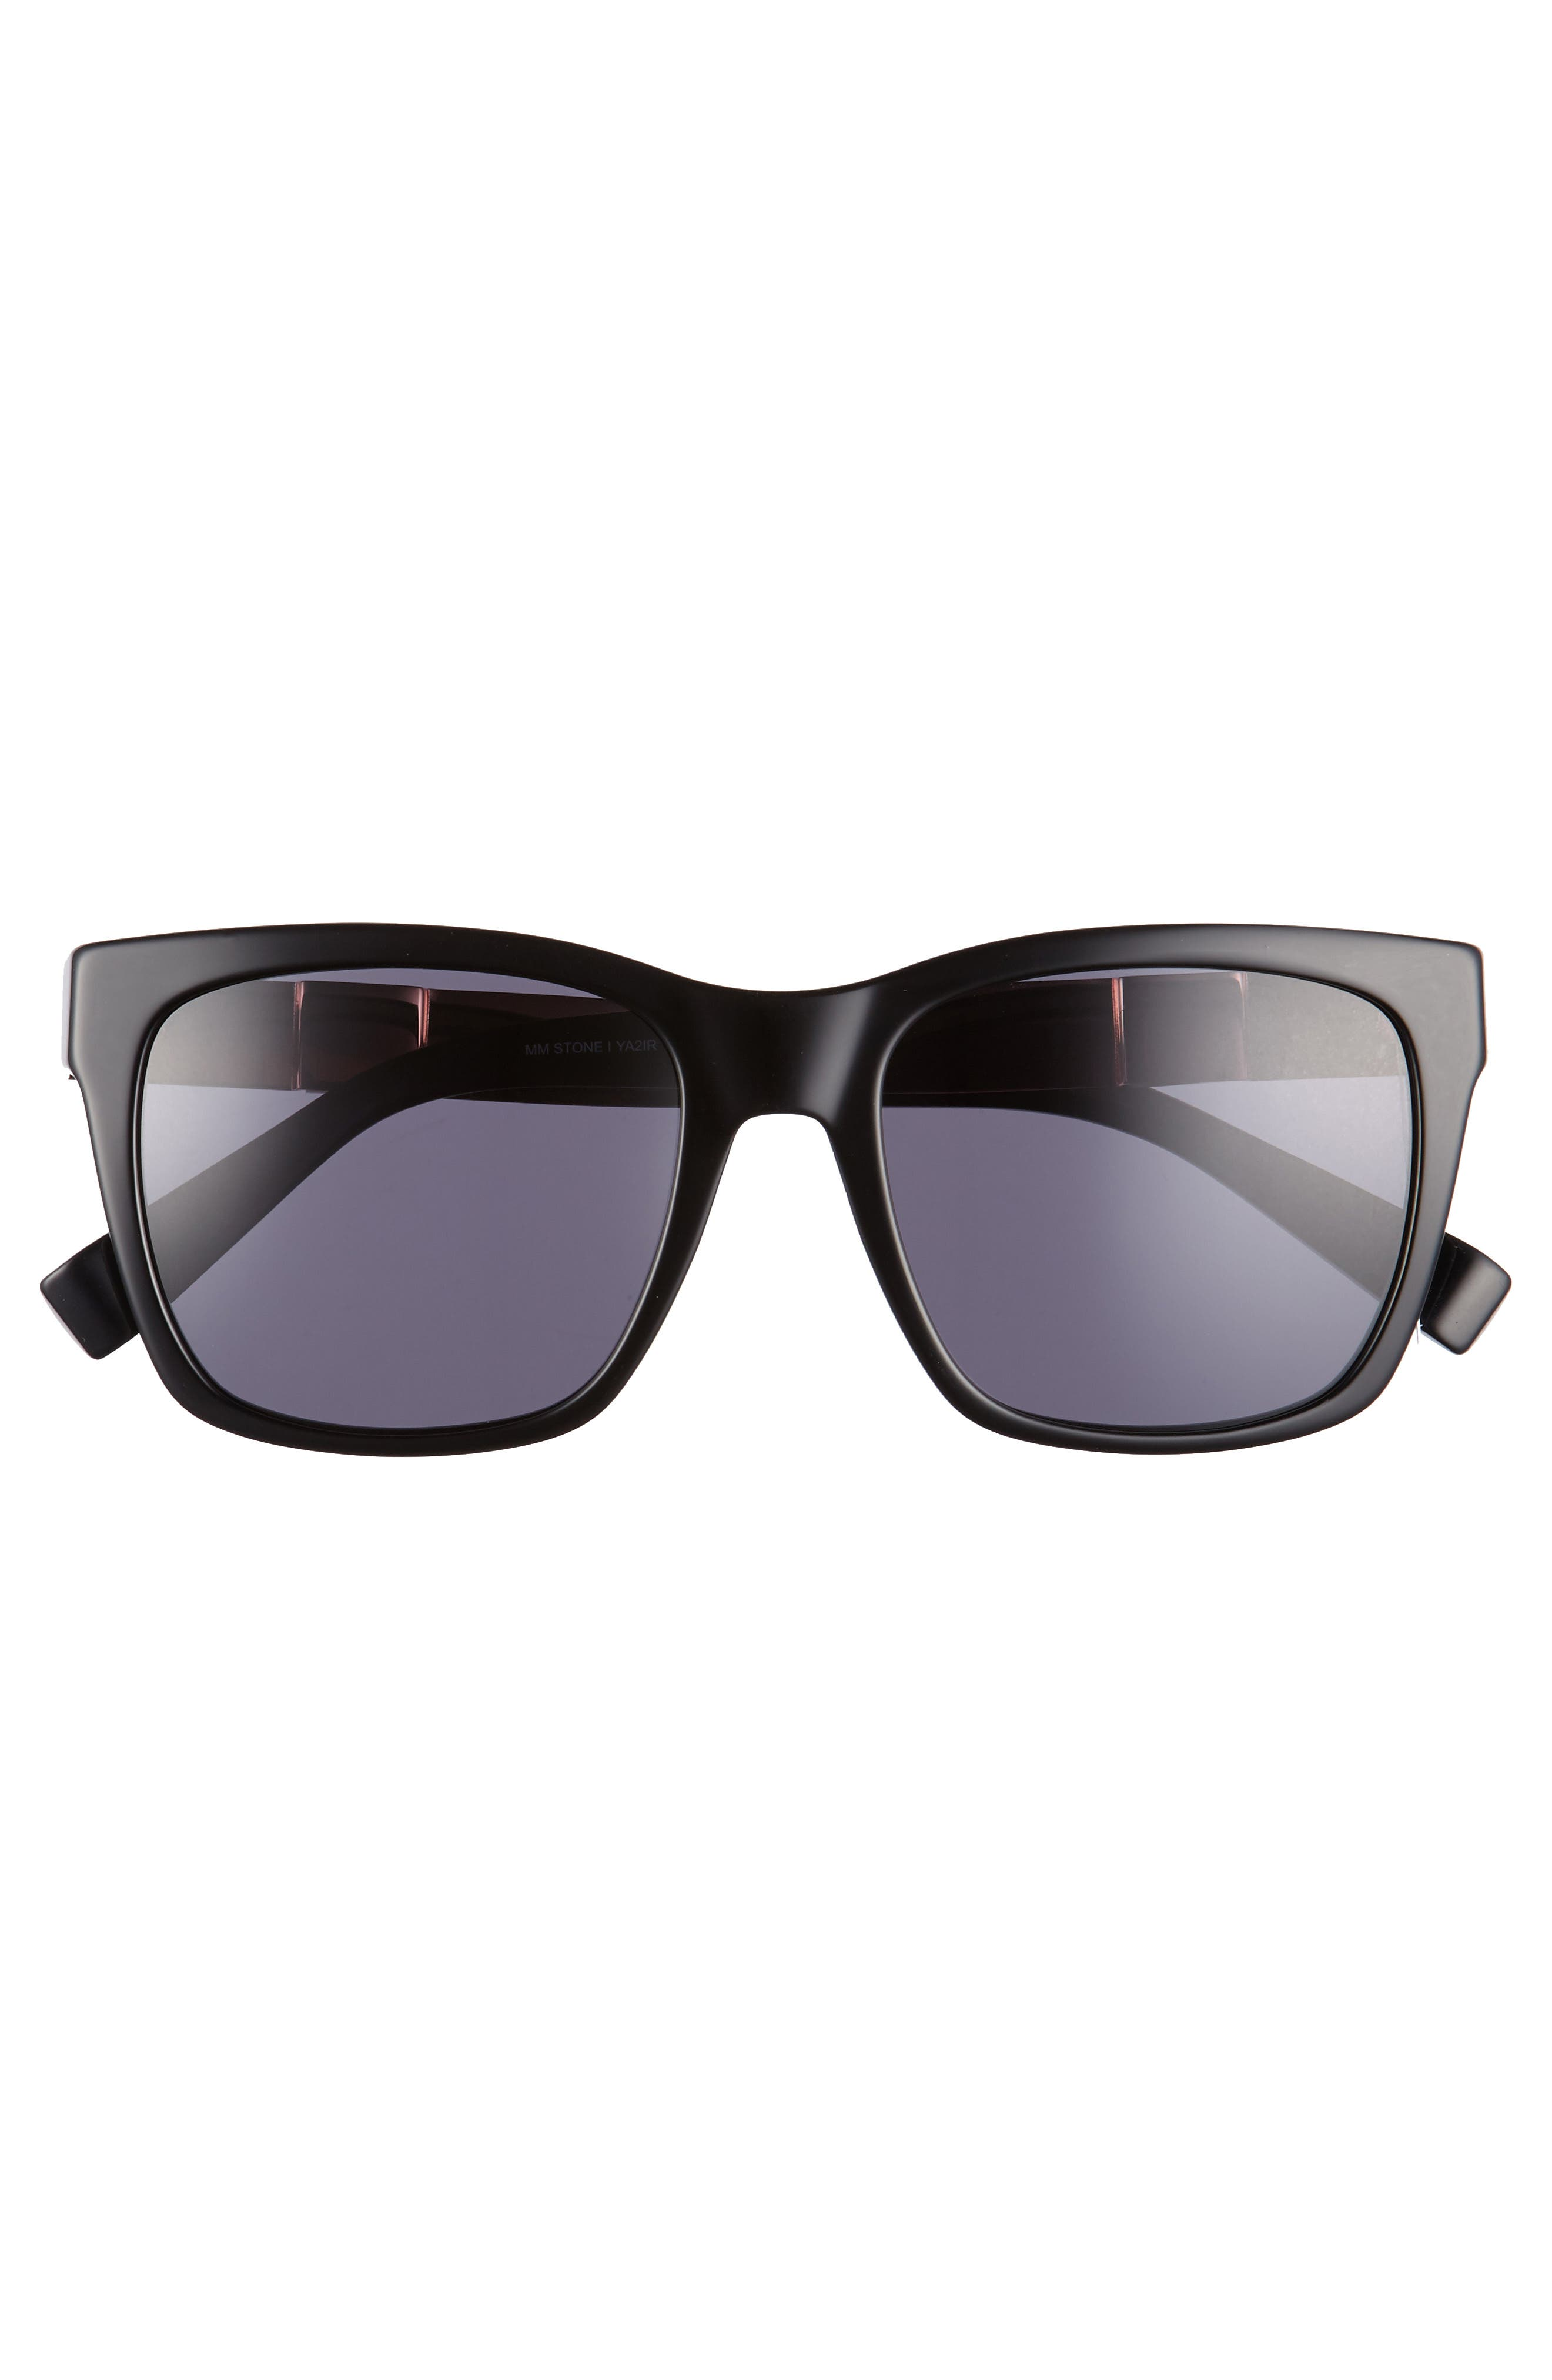 Stone 54mm Gradient Sunglasses,                             Alternate thumbnail 3, color,                             001